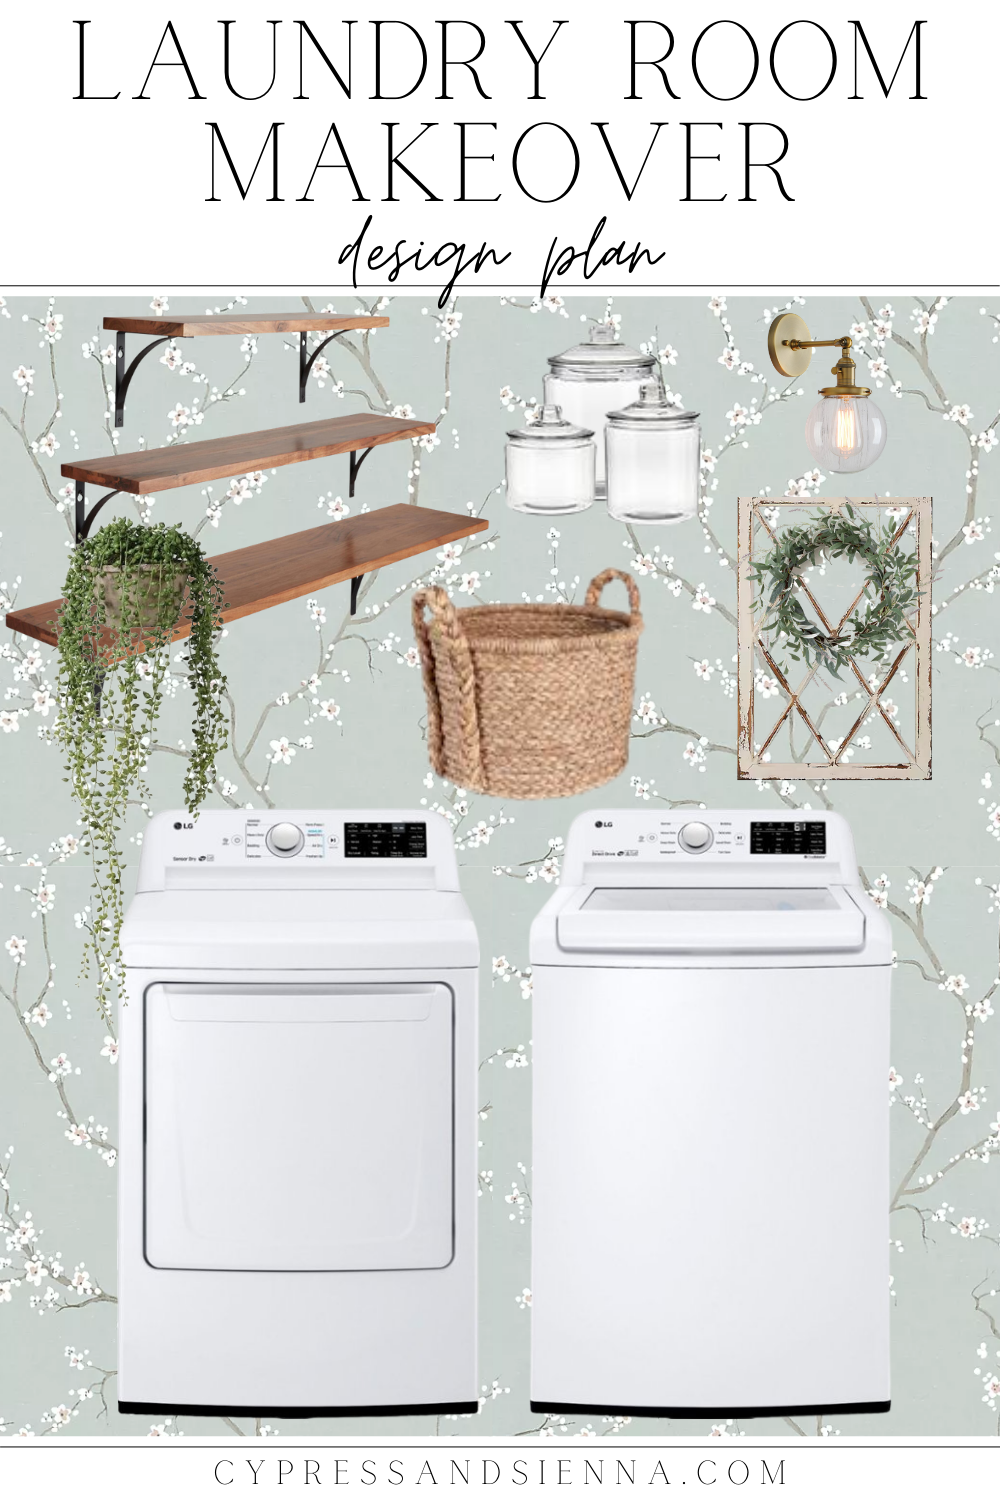 Laundry Room Makeover Design Plan Mood Board